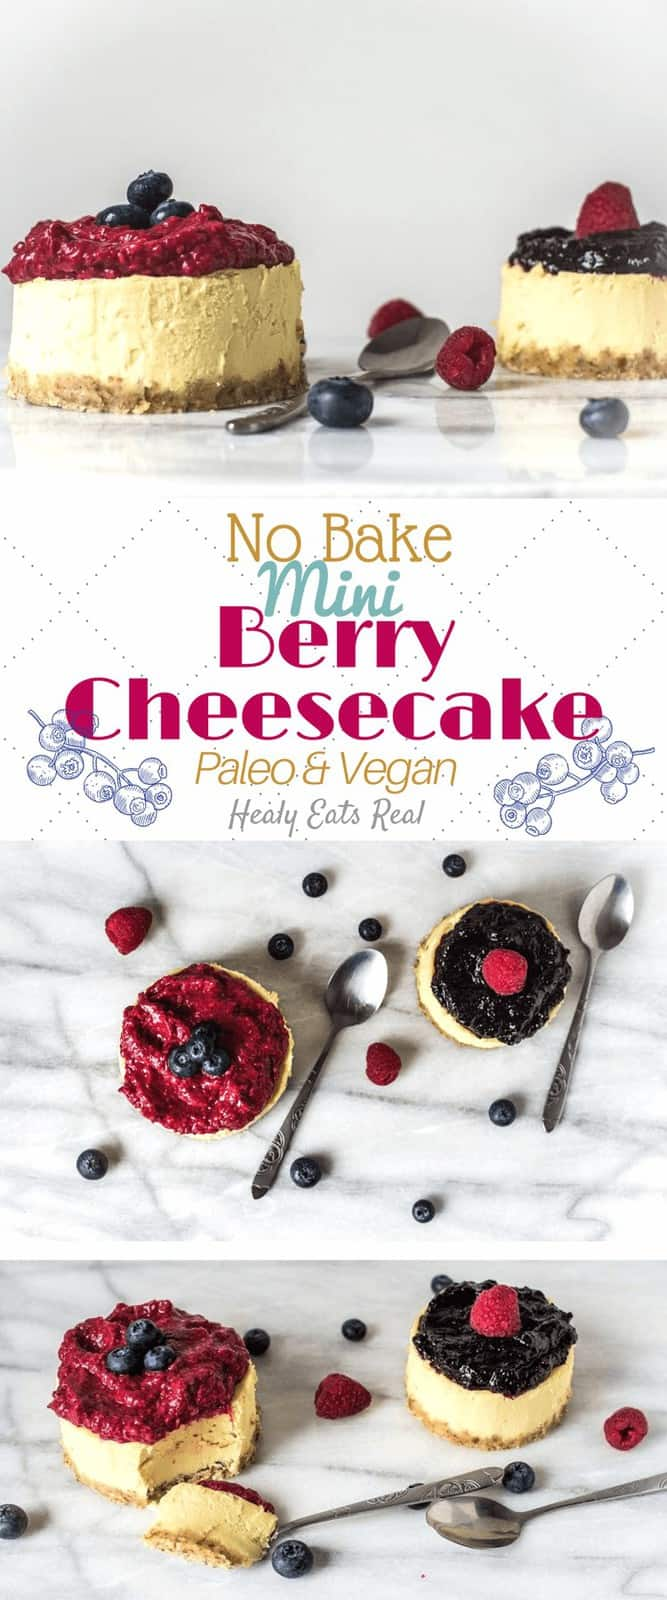 No Bake Mini Berry Cheesecake (Paleo & Vegan)